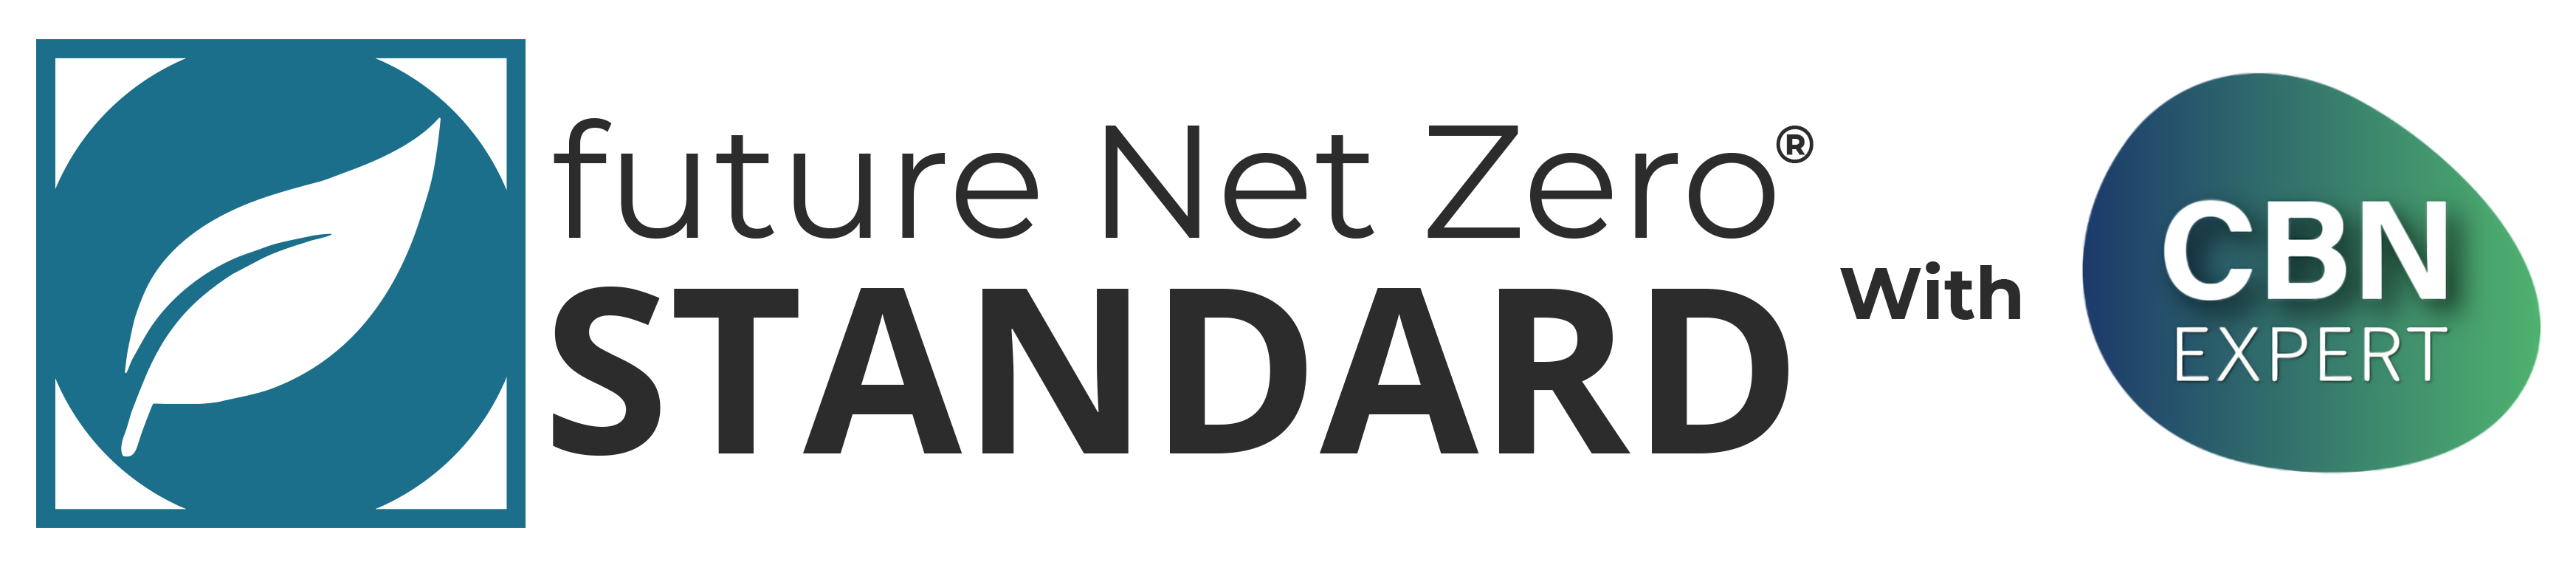 The FNZ Standard with CBN Expert